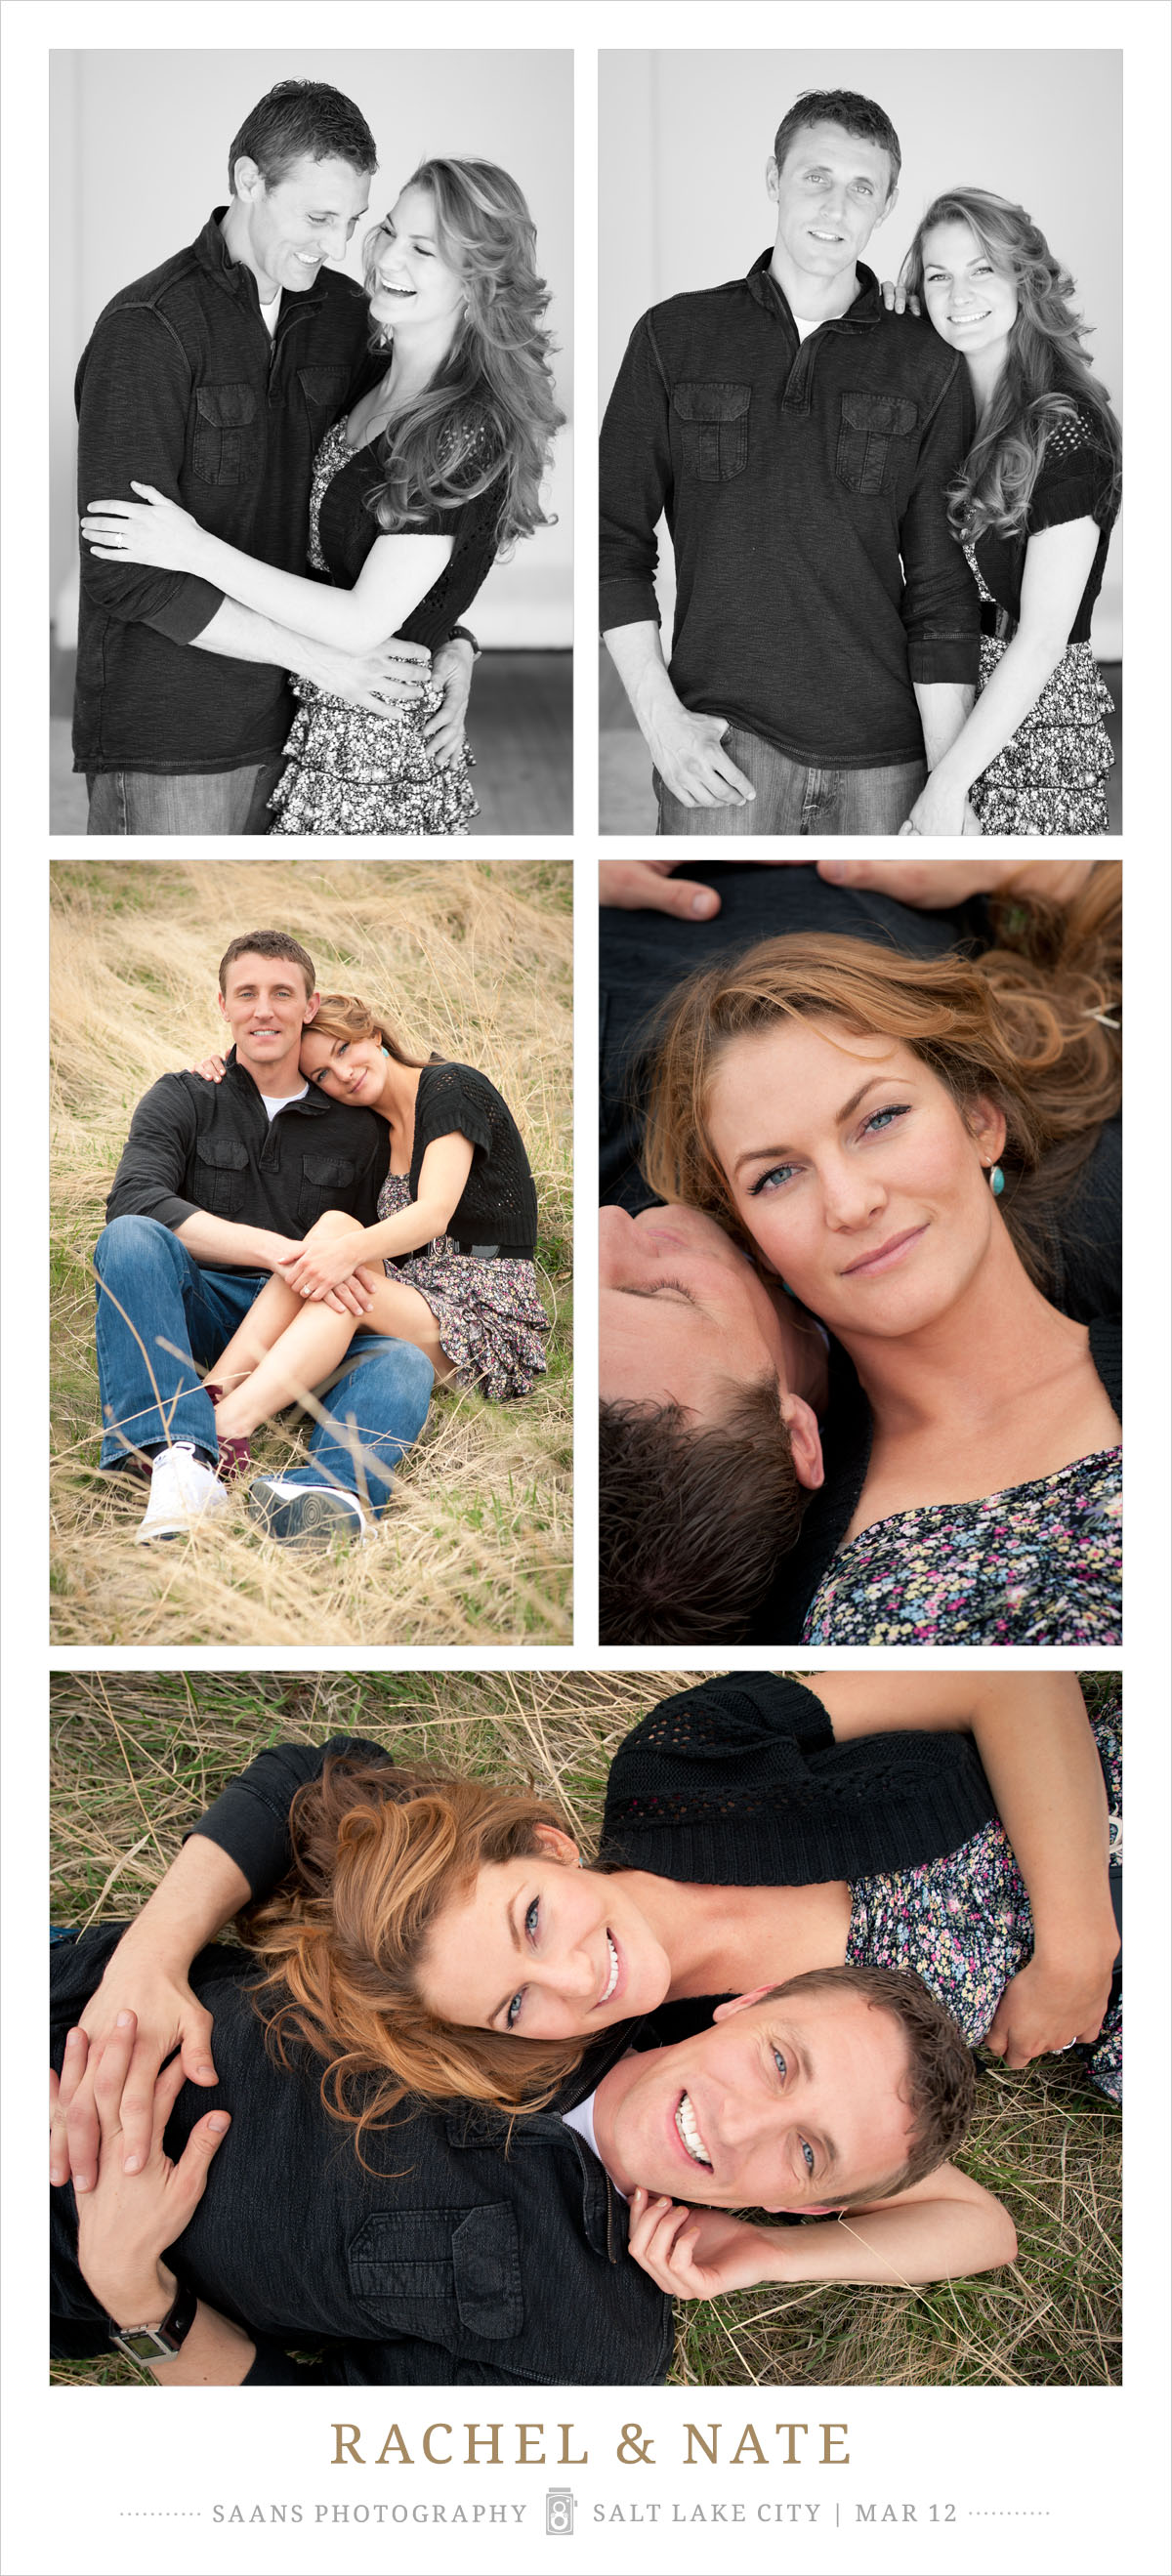 Rachel and Nate Engagement Photography